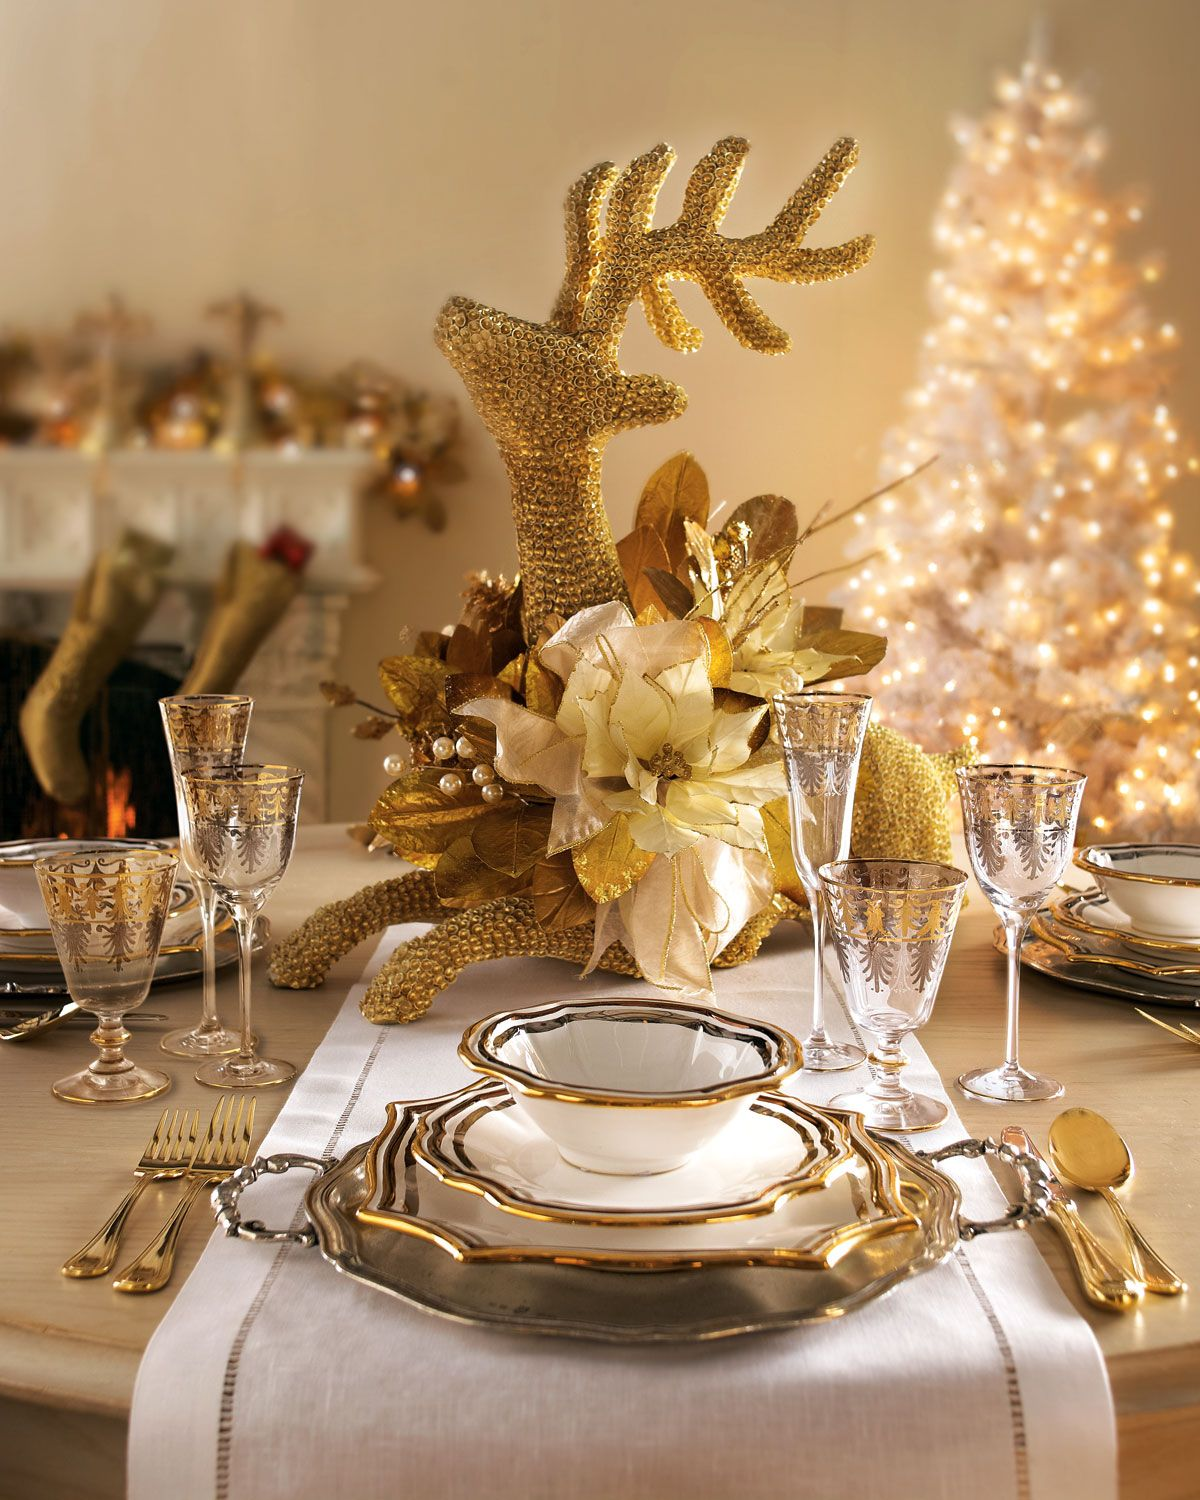 decorating spaghetti dinner decorations for banquet | -elegant-golden- christmas-dining-table-setting-decoration-ideas . & A Golden Xmas | Pinterest | Dining table settings Spaghetti dinner ...